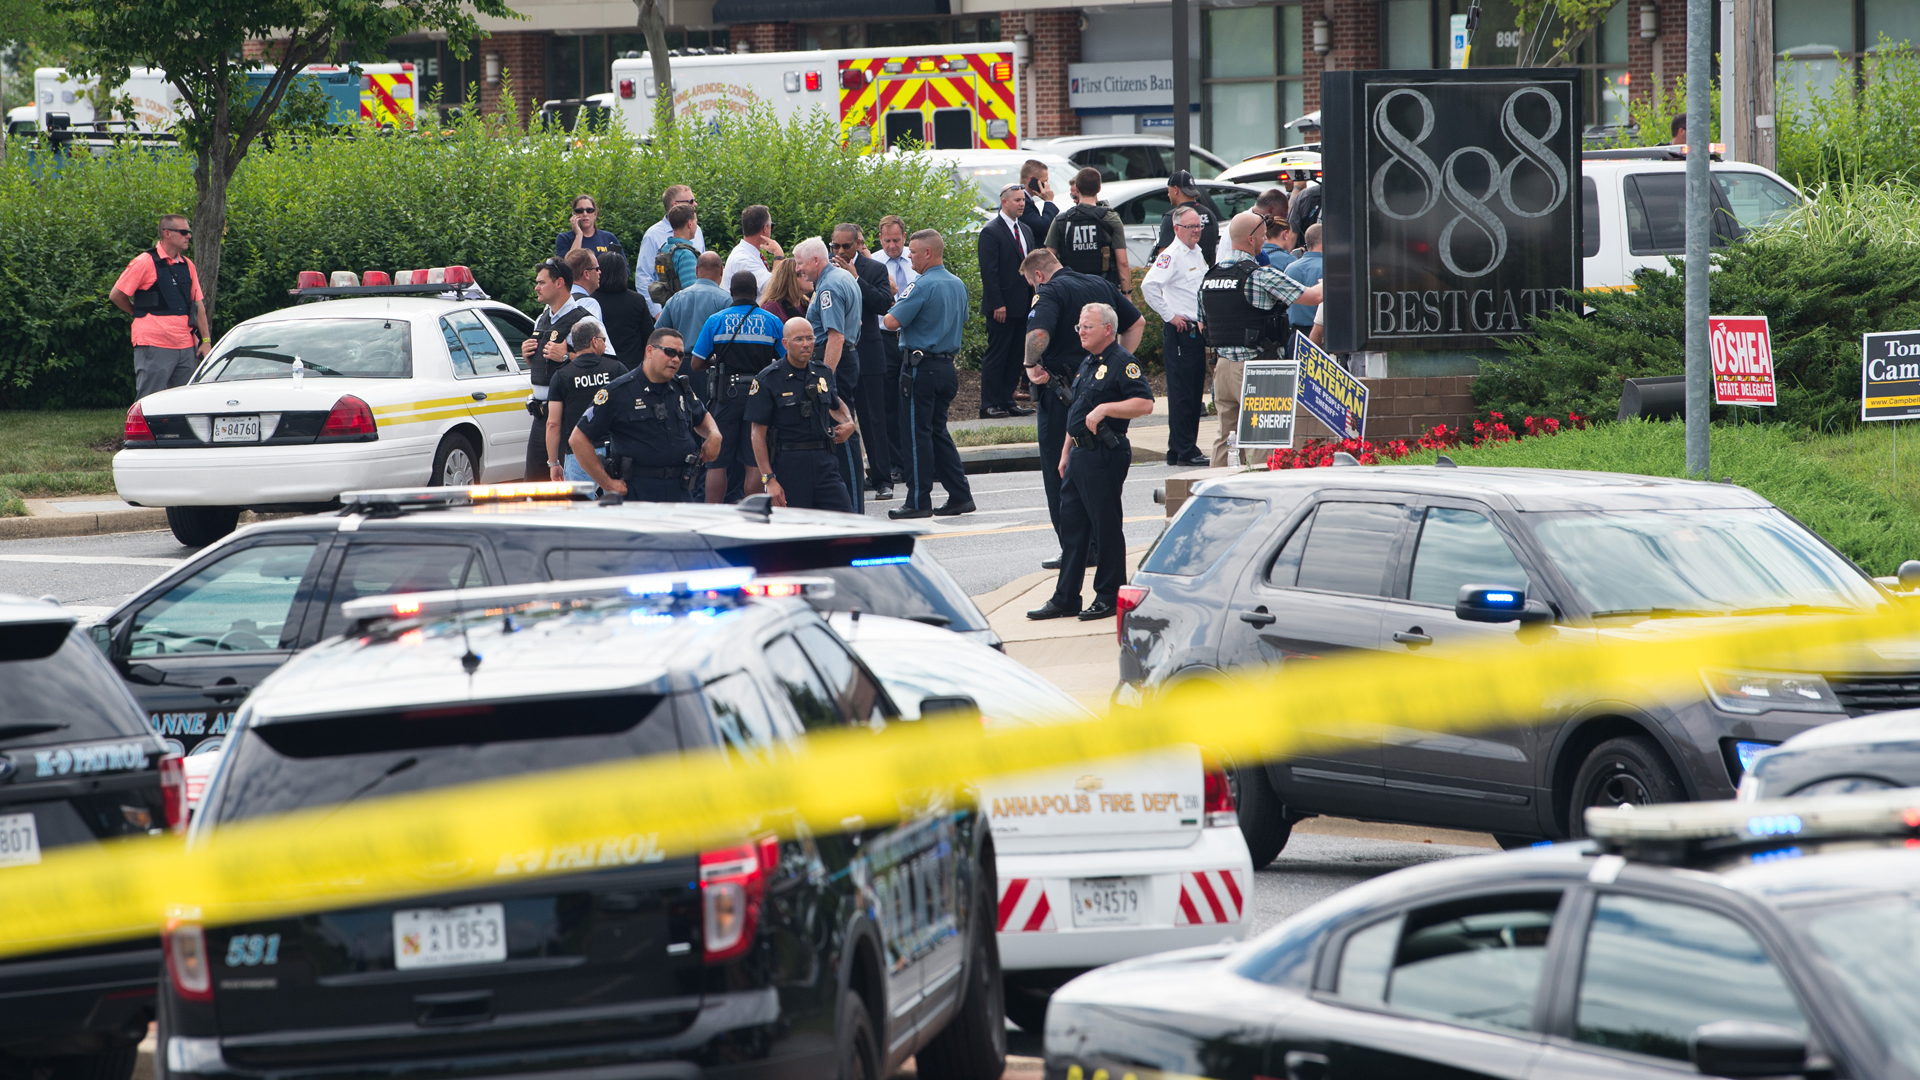 Police respond to a shooting at the offices of the Capital Gazette, a daily newspaper, in Annapolis, Maryland. (Credit: SAUL LOEB/AFP/Getty Images)